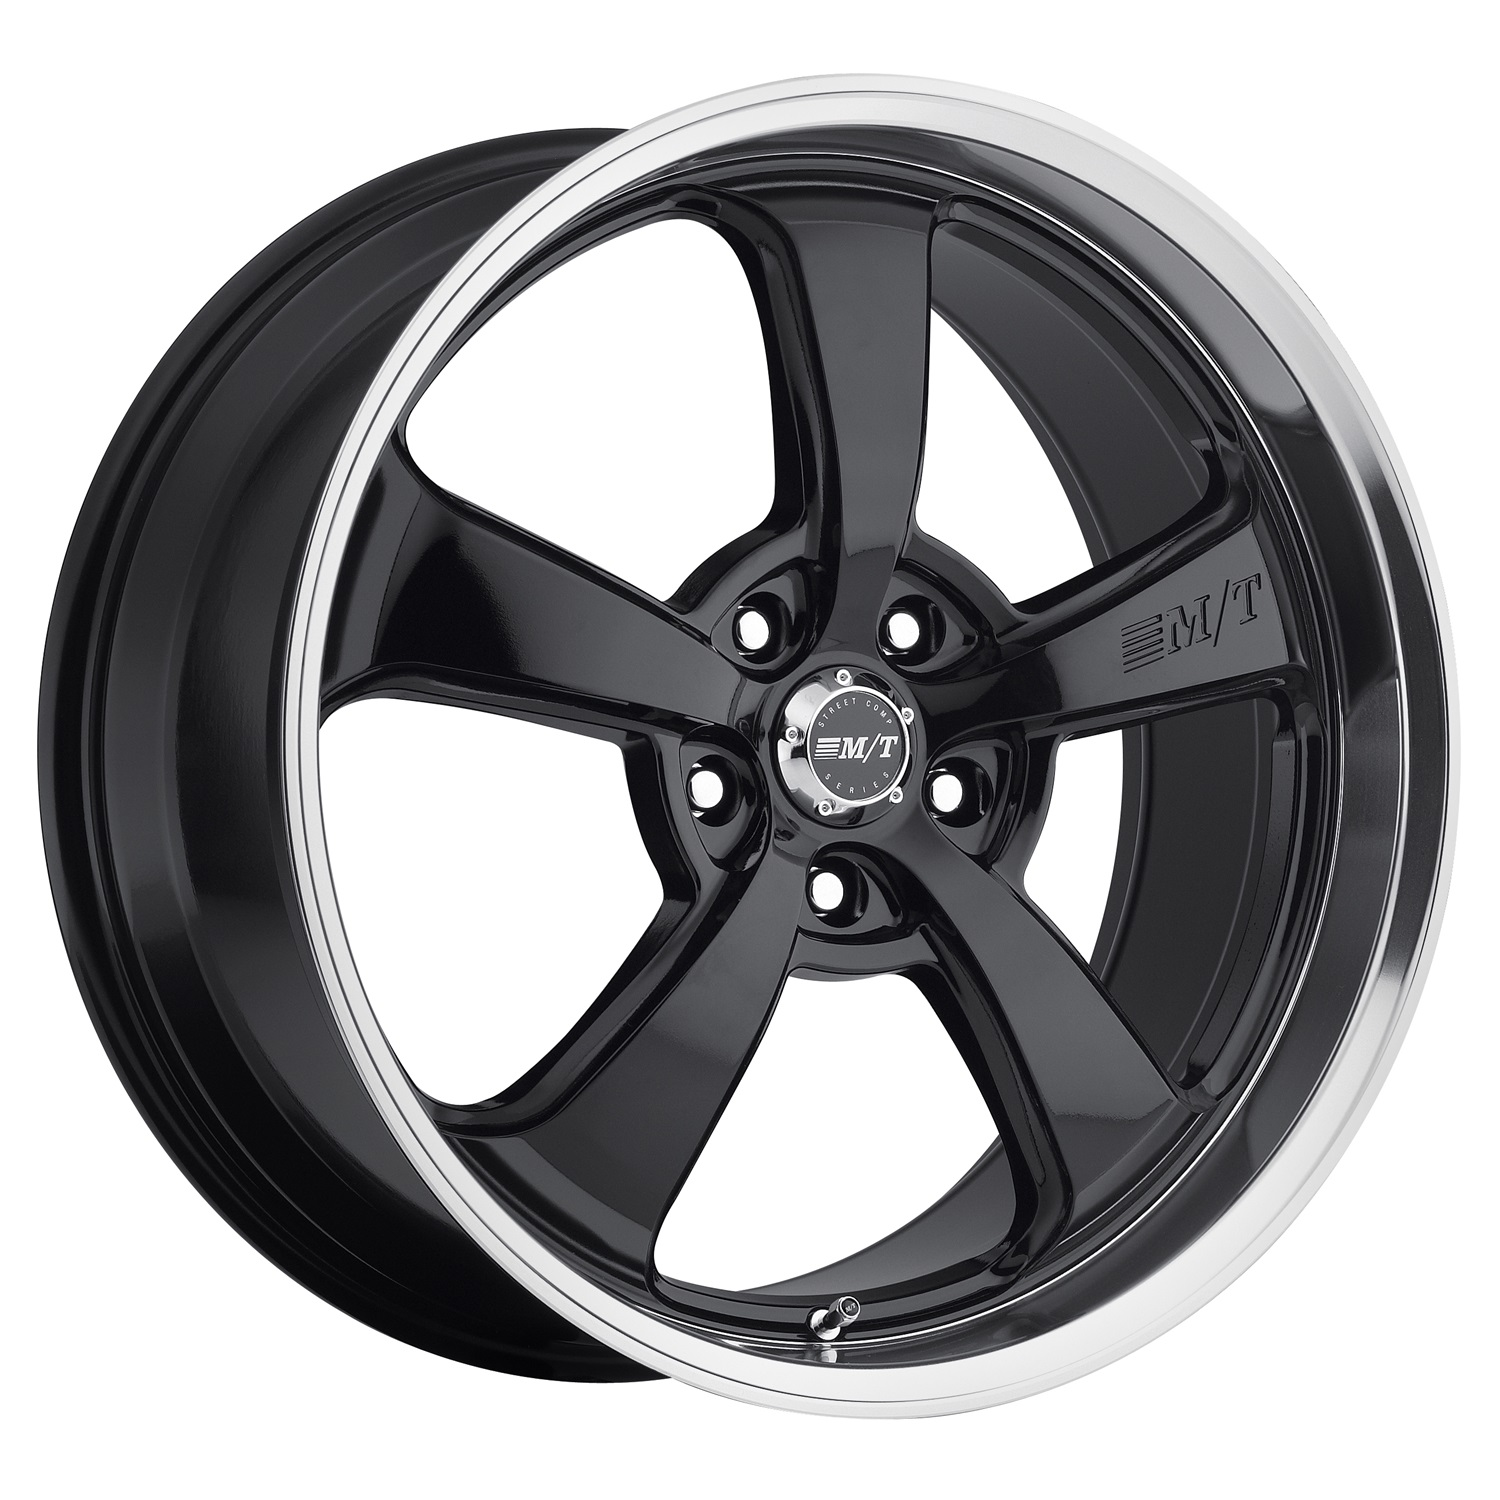 Mickey Thompson 90000001865 M/T Street Comp SC-5 Wheel Size 18x10.5